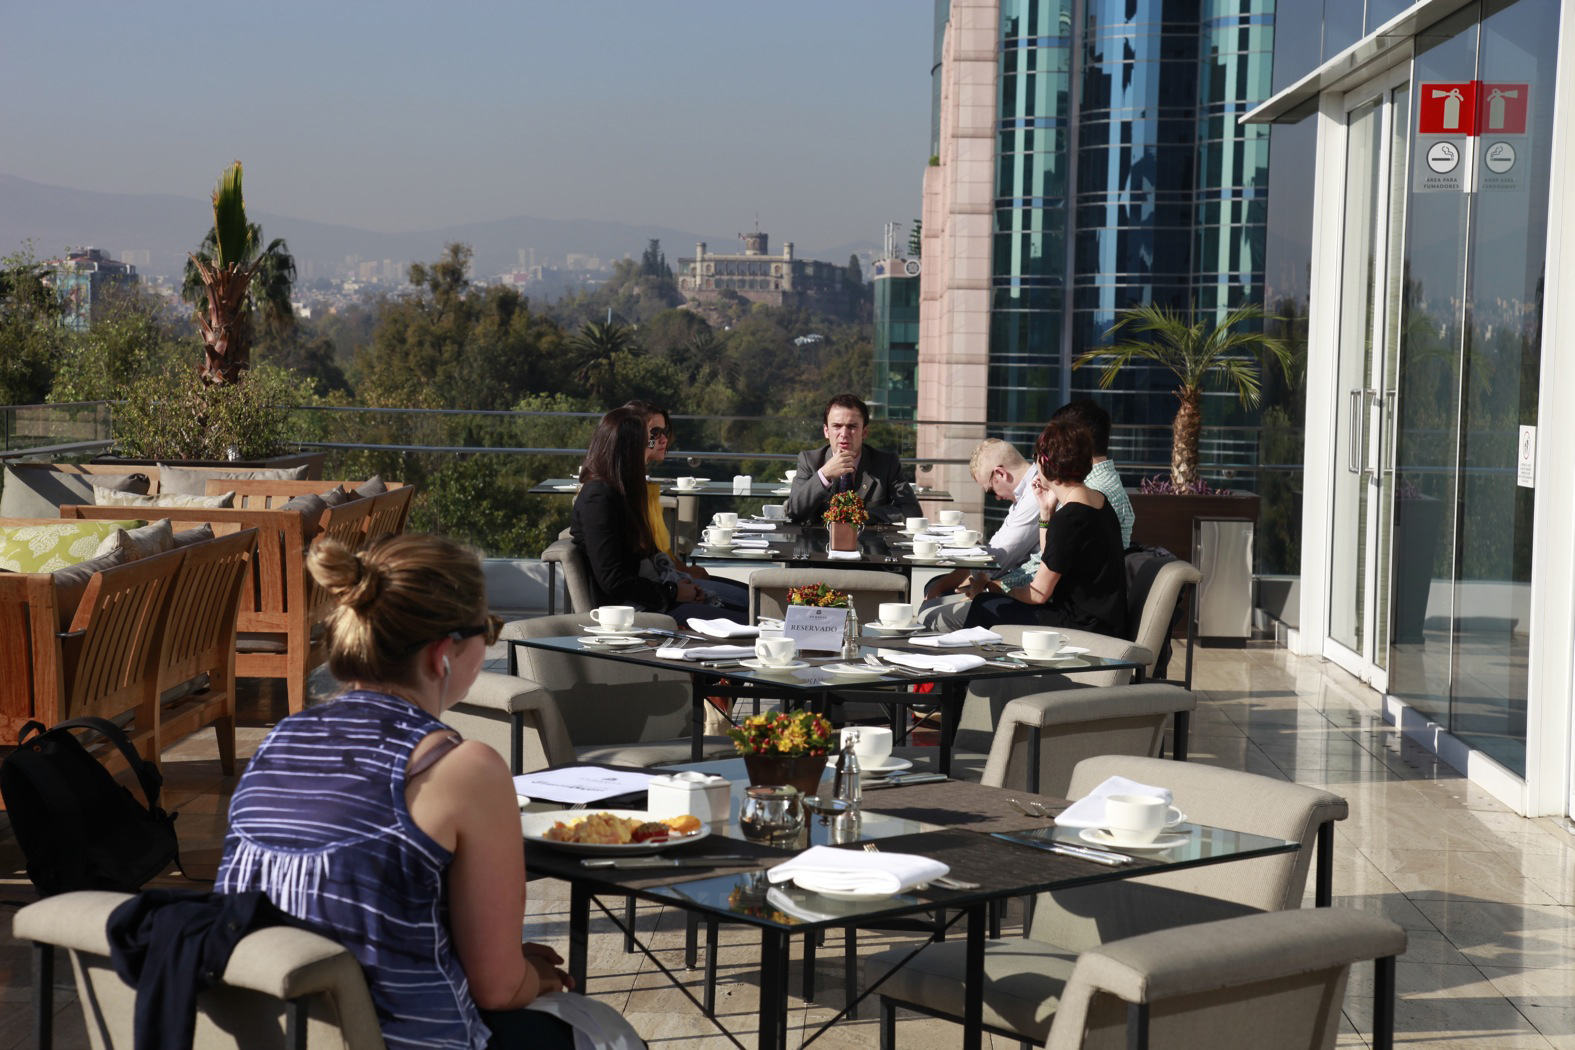 We had breakfast at the St. Regis Hotel, designs by Cesar Pelli, on one of Mexico City's main drags, Paseo de Reforma. From the St. Regis terrace you have a great view to the west of Chapultepec Park as well as Chapultepec Castle. To the east you can see